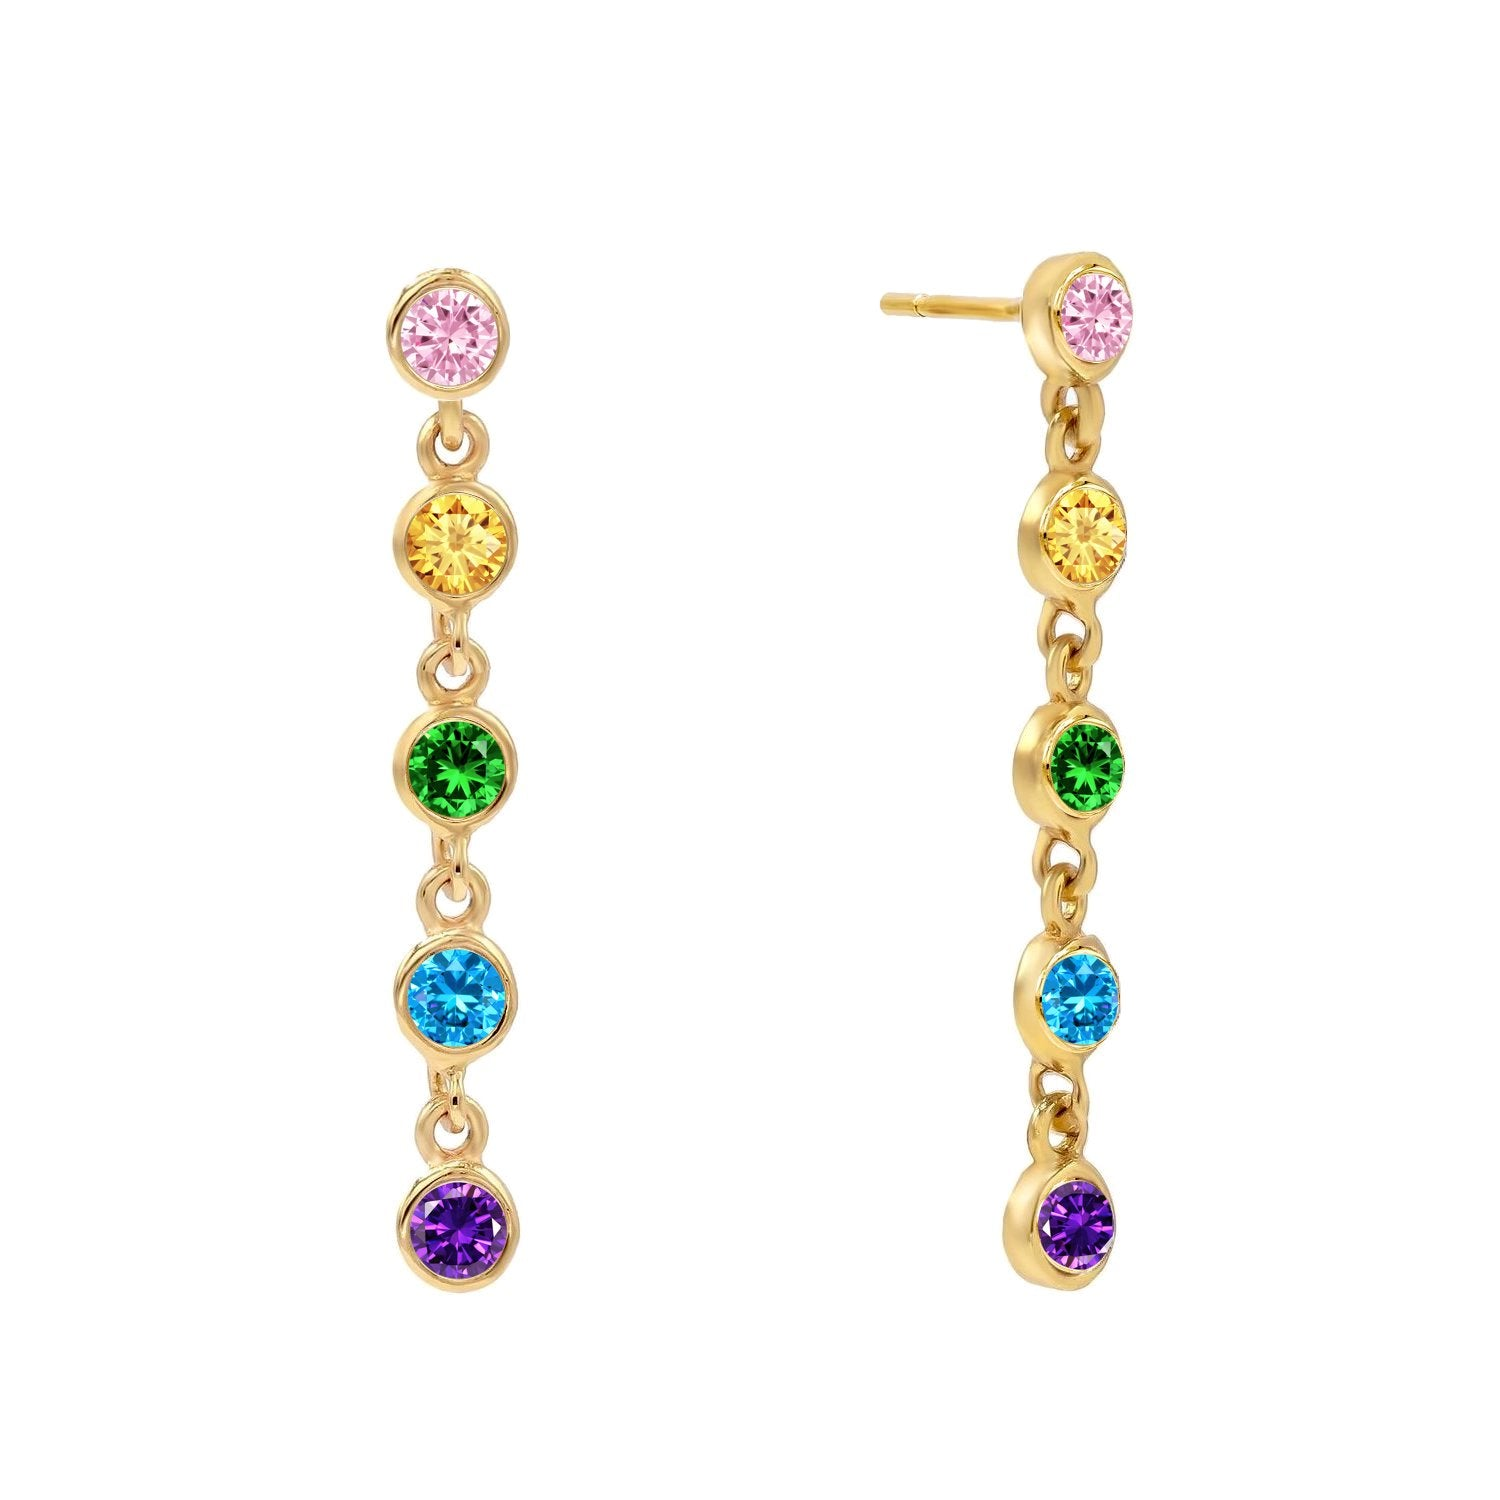 Rainbow Bezel Stud Earrings